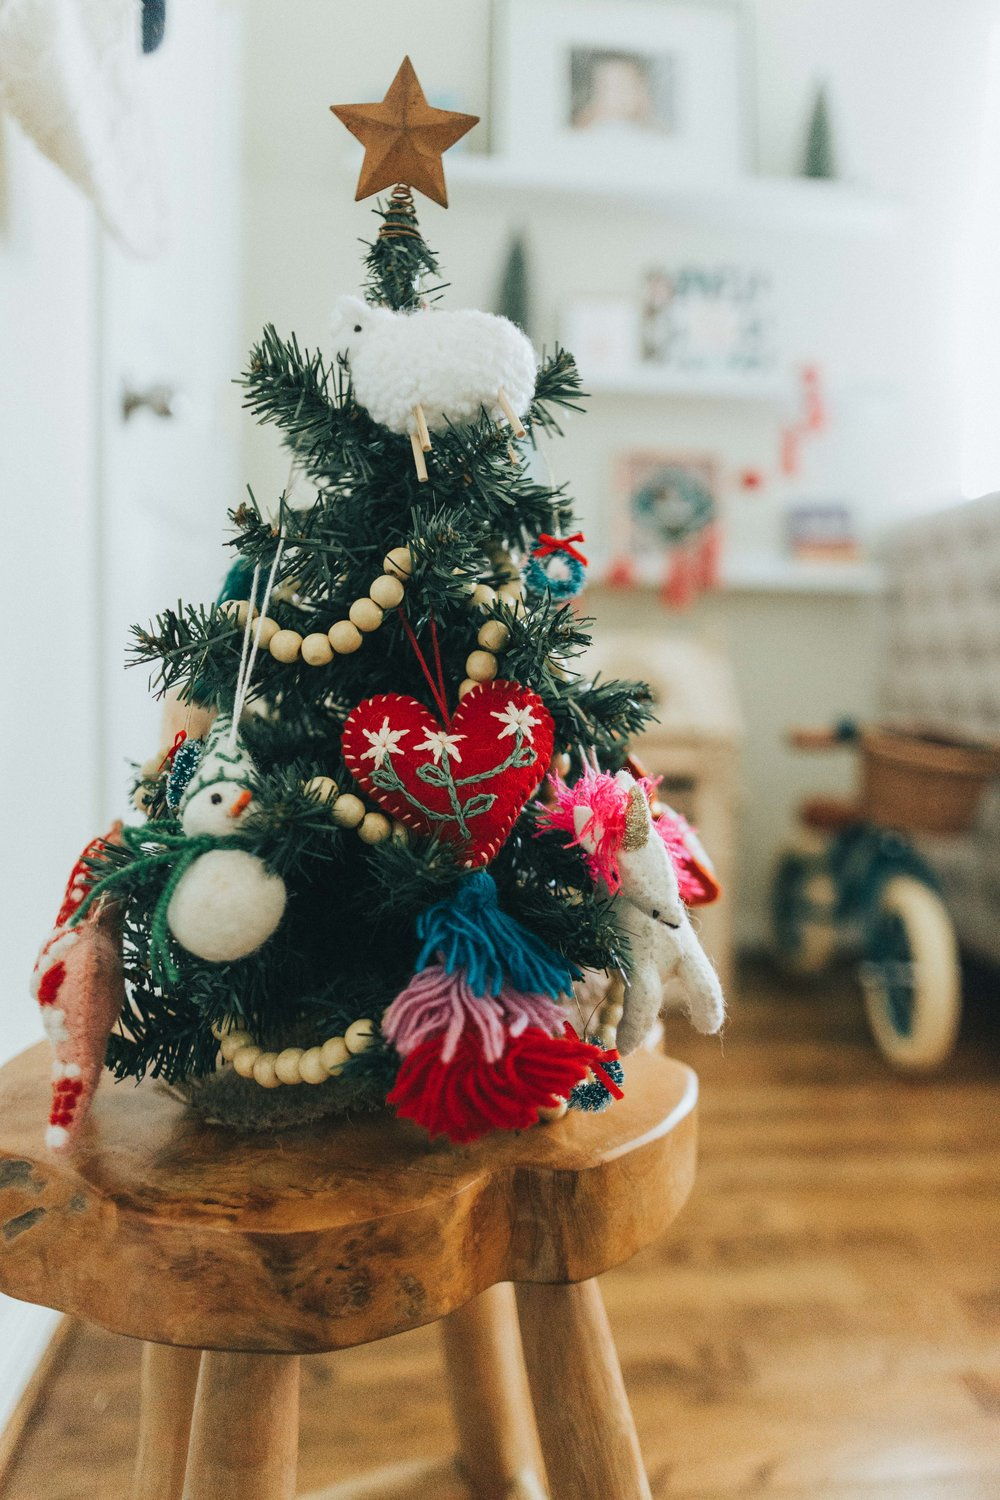 The kids have their own Christmas. All of the ornaments are made out of wool.